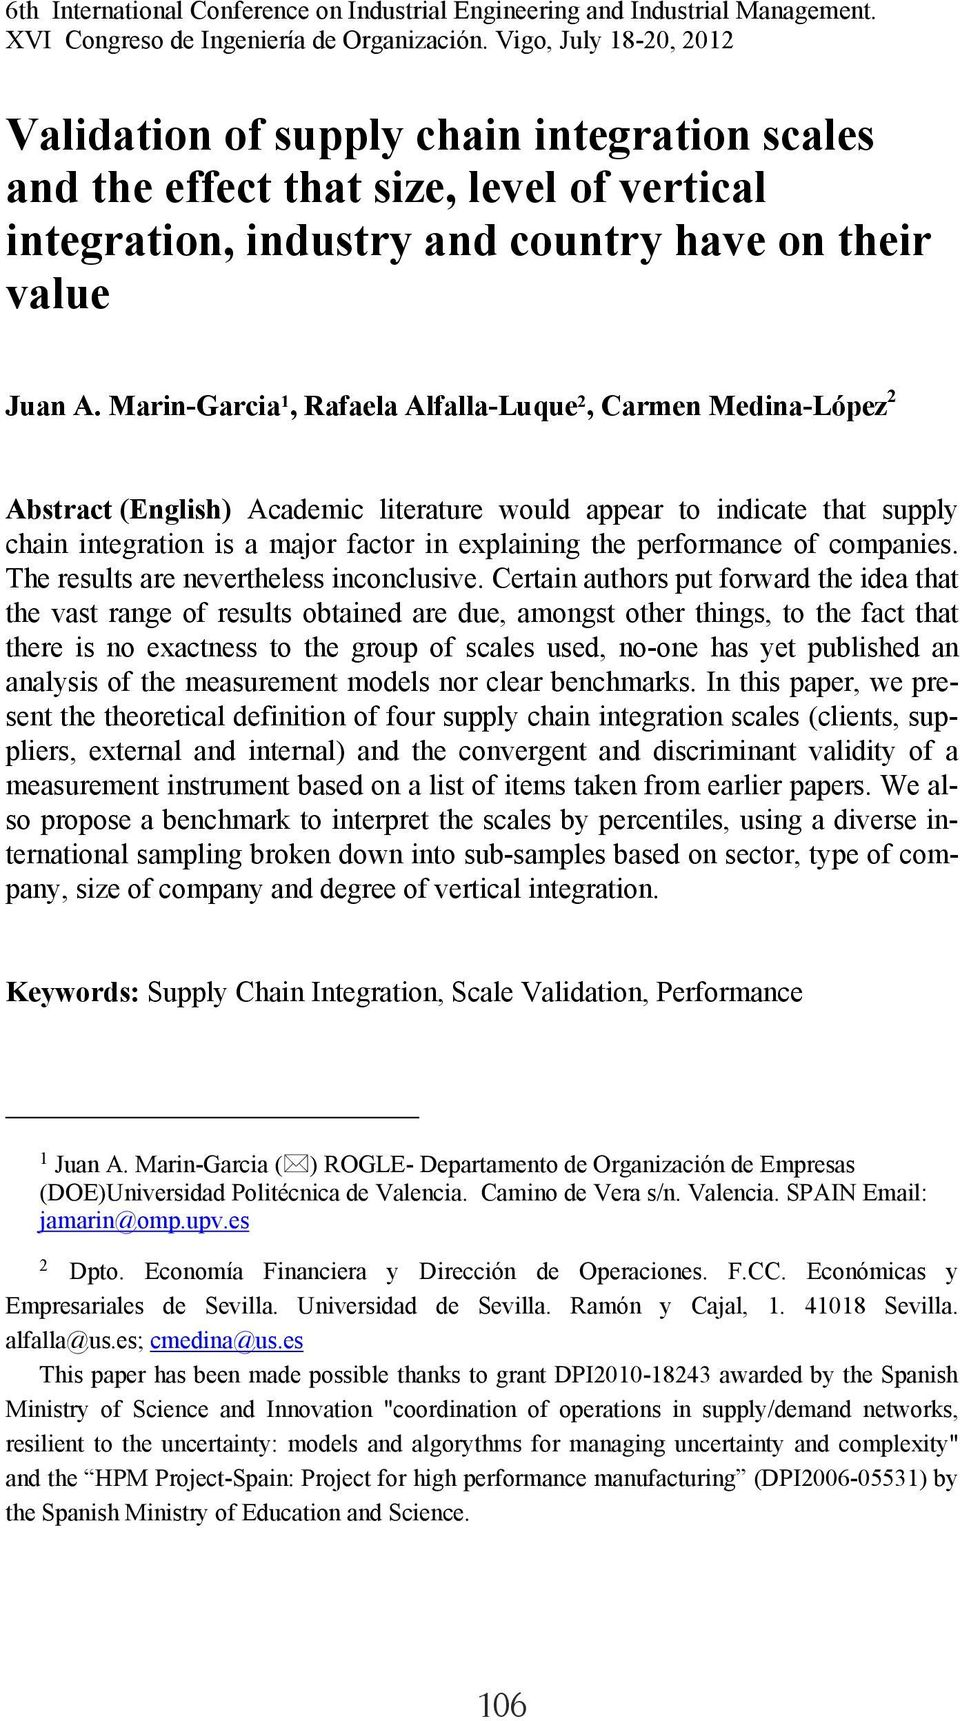 Marin-Garcia 1, Rafaela Alfalla-Luque 2, Carmen Medina-López 2 Abstract (English) Academic literature would appear to indicate that supply chain integration is a major factor in explaining the